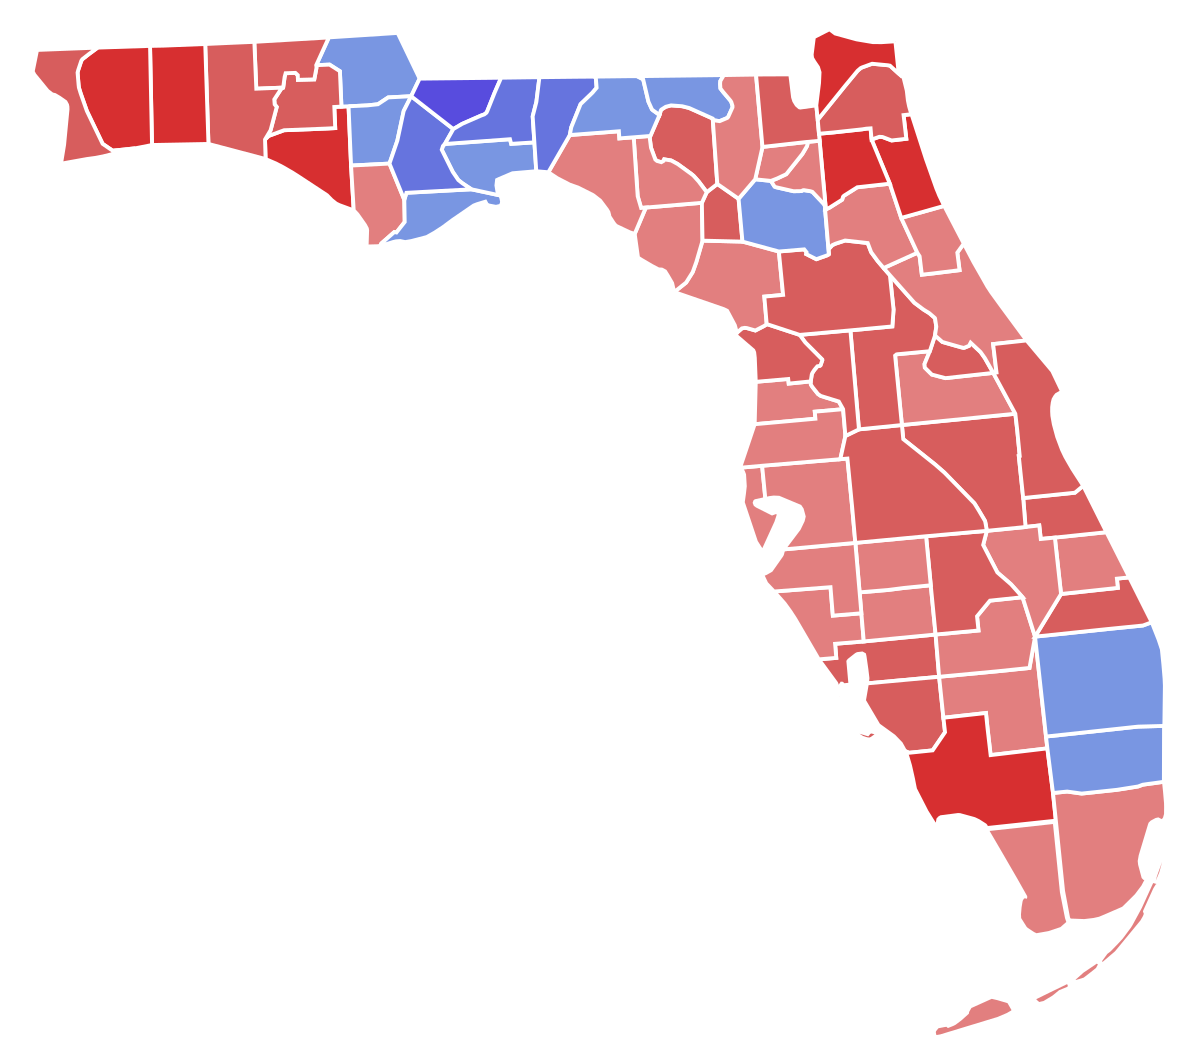 Florida gubernatorial election wikipedia. Voting clipart jacksonian democracy